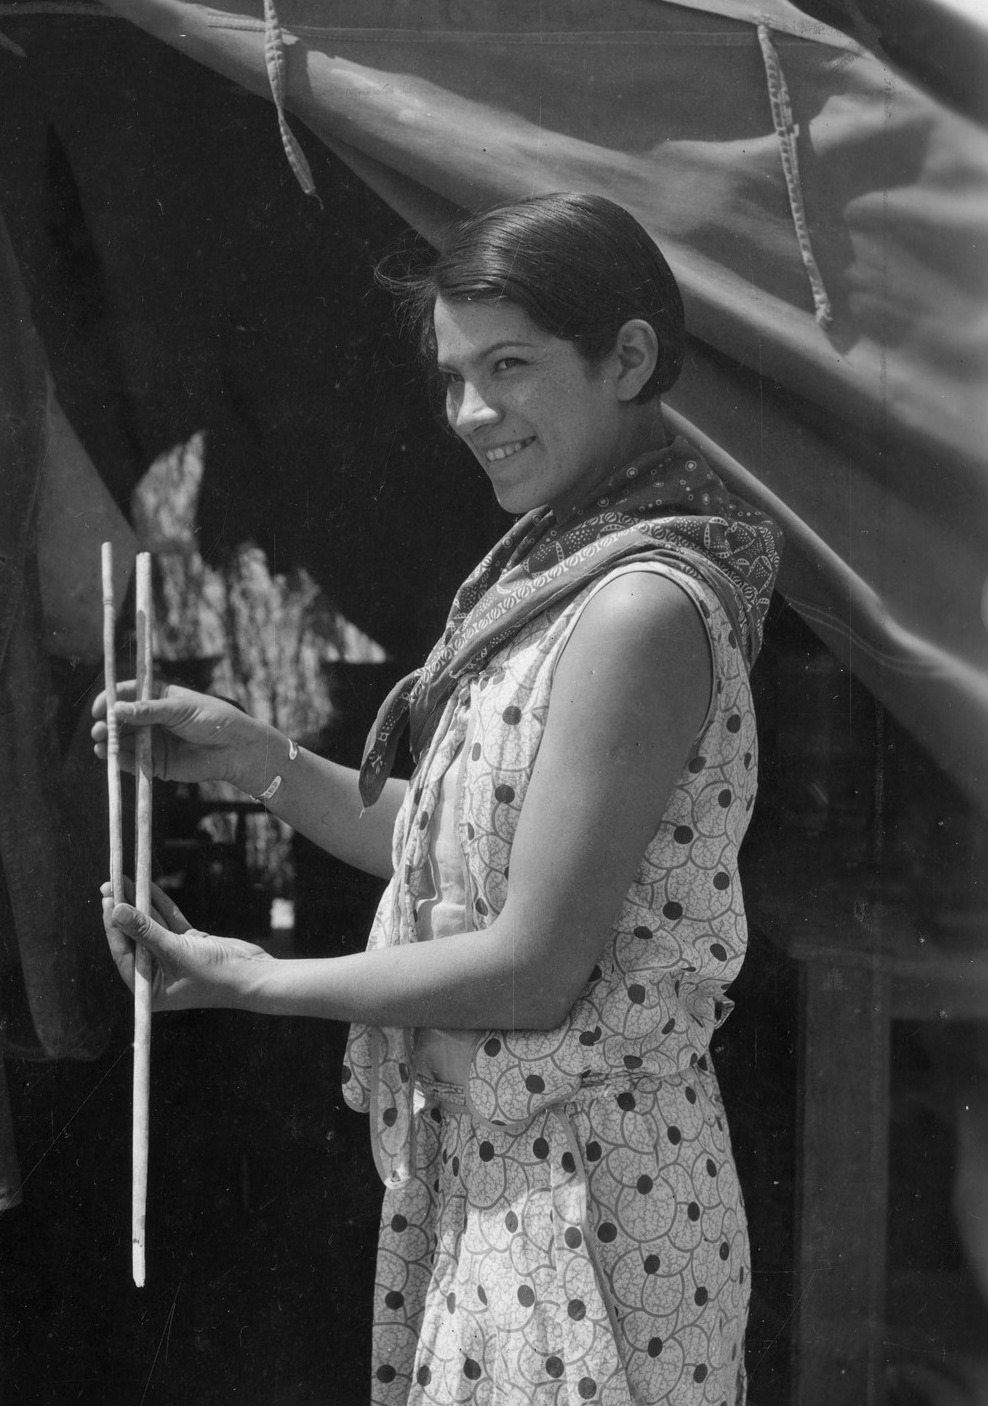 A black and white photograph depicts a young Bertha Parker Pallan Cody holding atlatl darts.